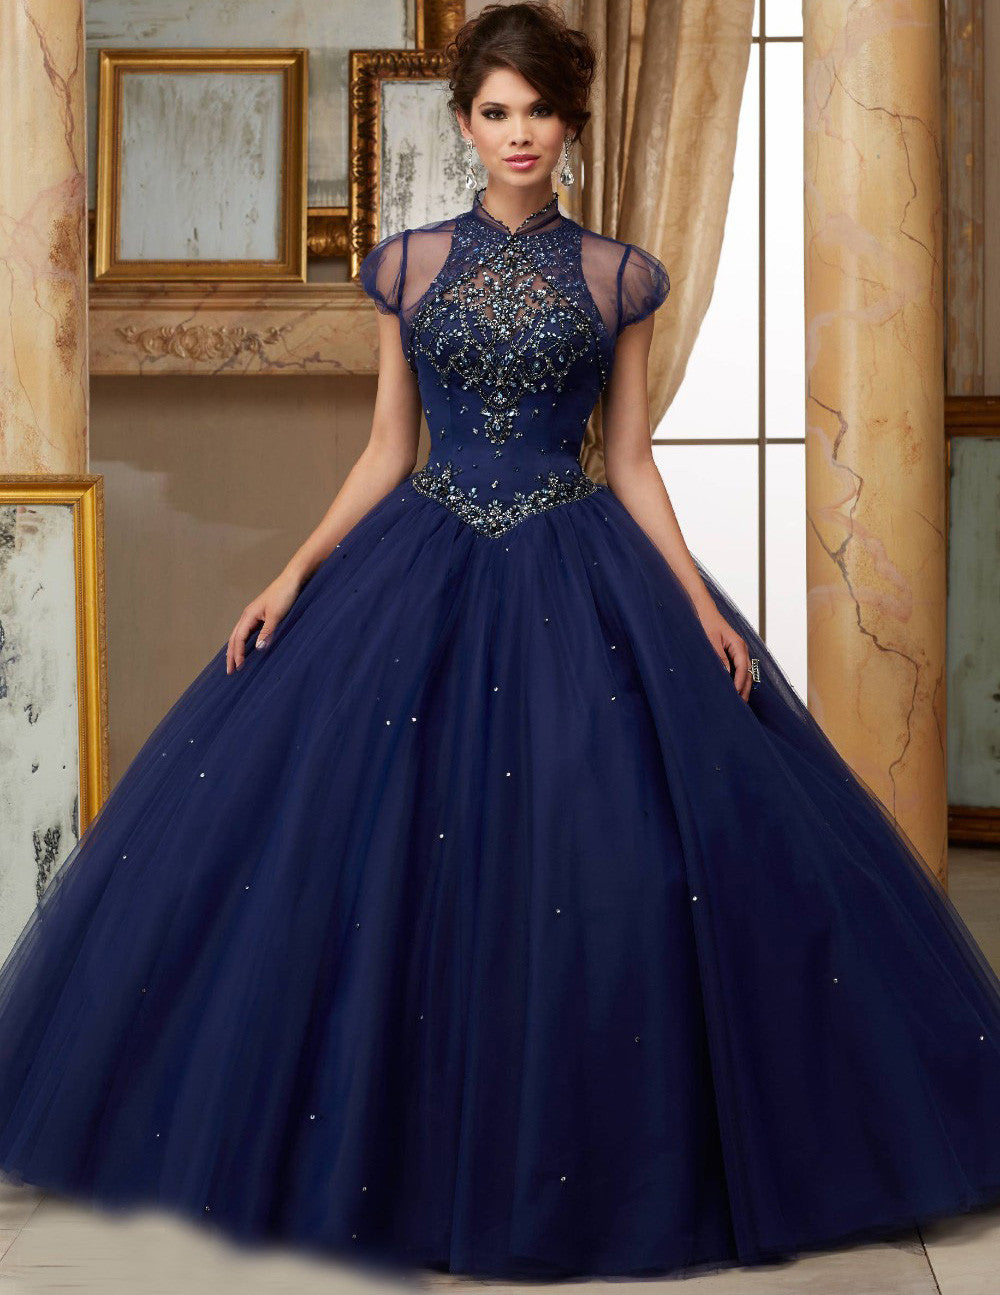 2017 New Ball Gowns Scoop Crystals Navy Blue Soft Tulle Princess Quinceanera Dress for Sweet 16 Years Vestido De 15 Years QR73